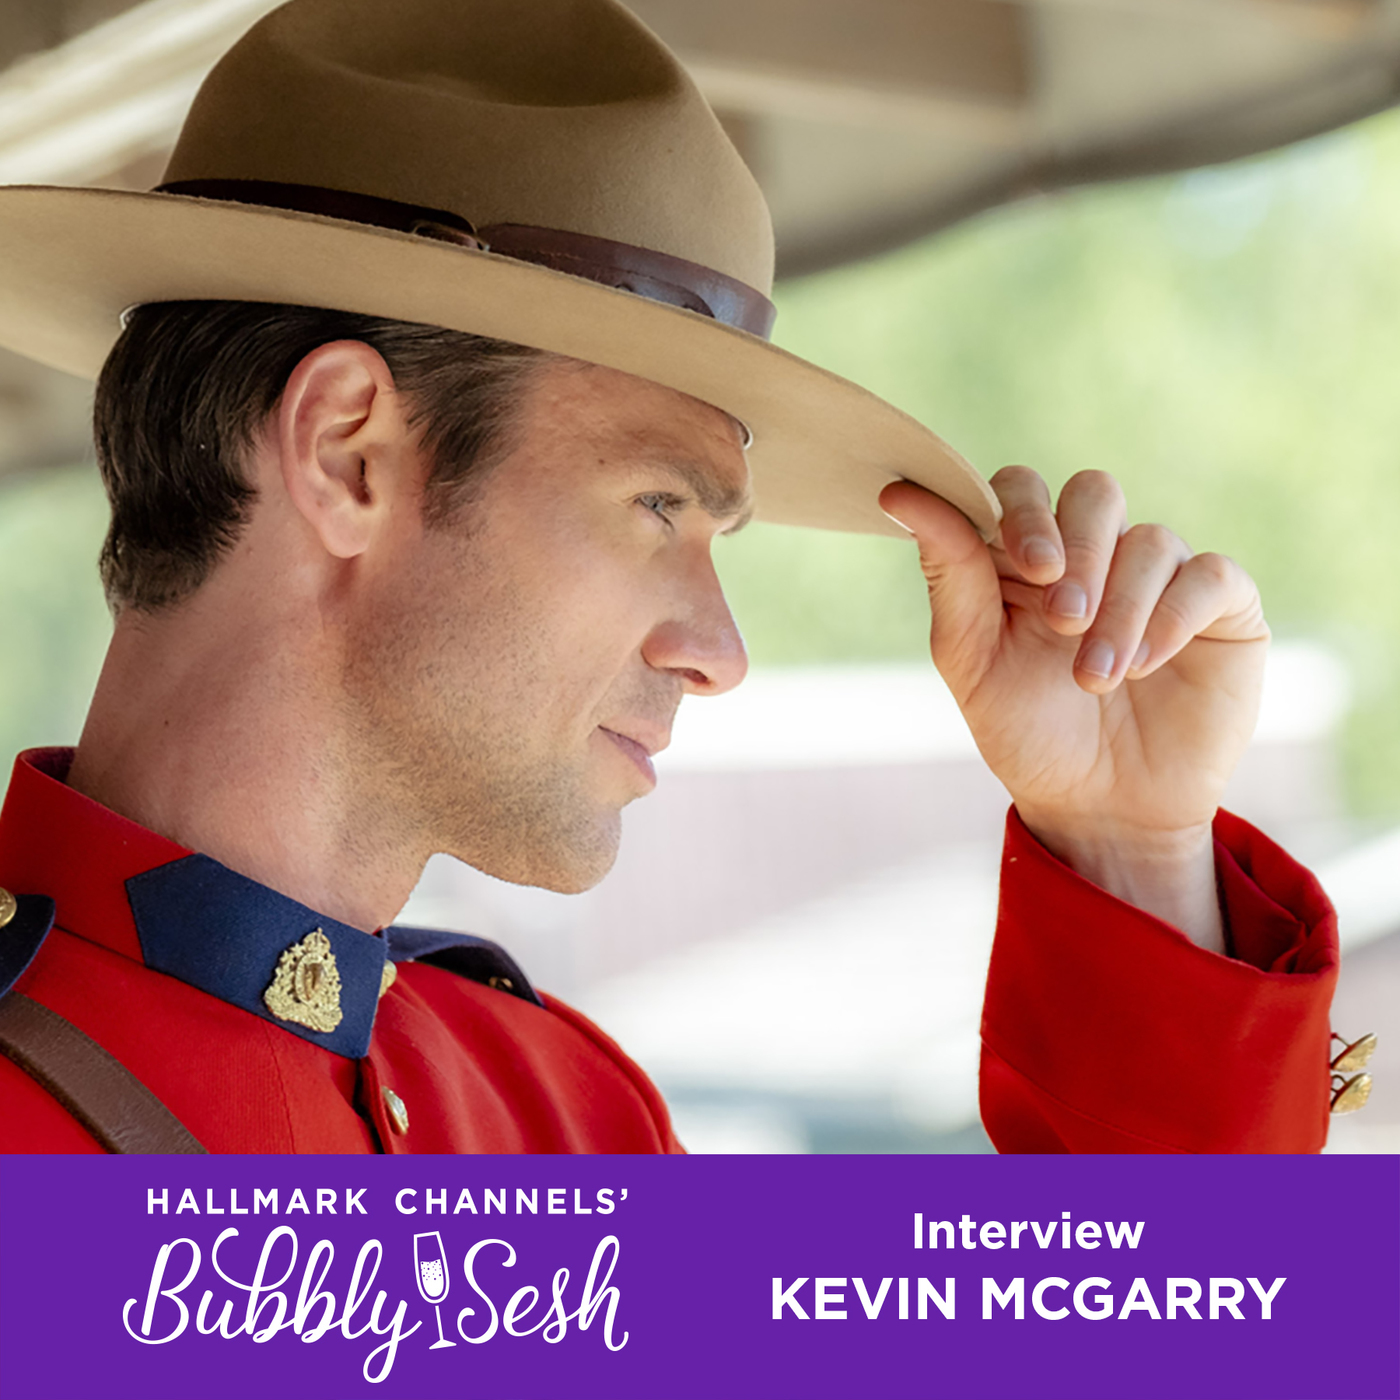 Kevin McGarry Interview: When Calls the Heart